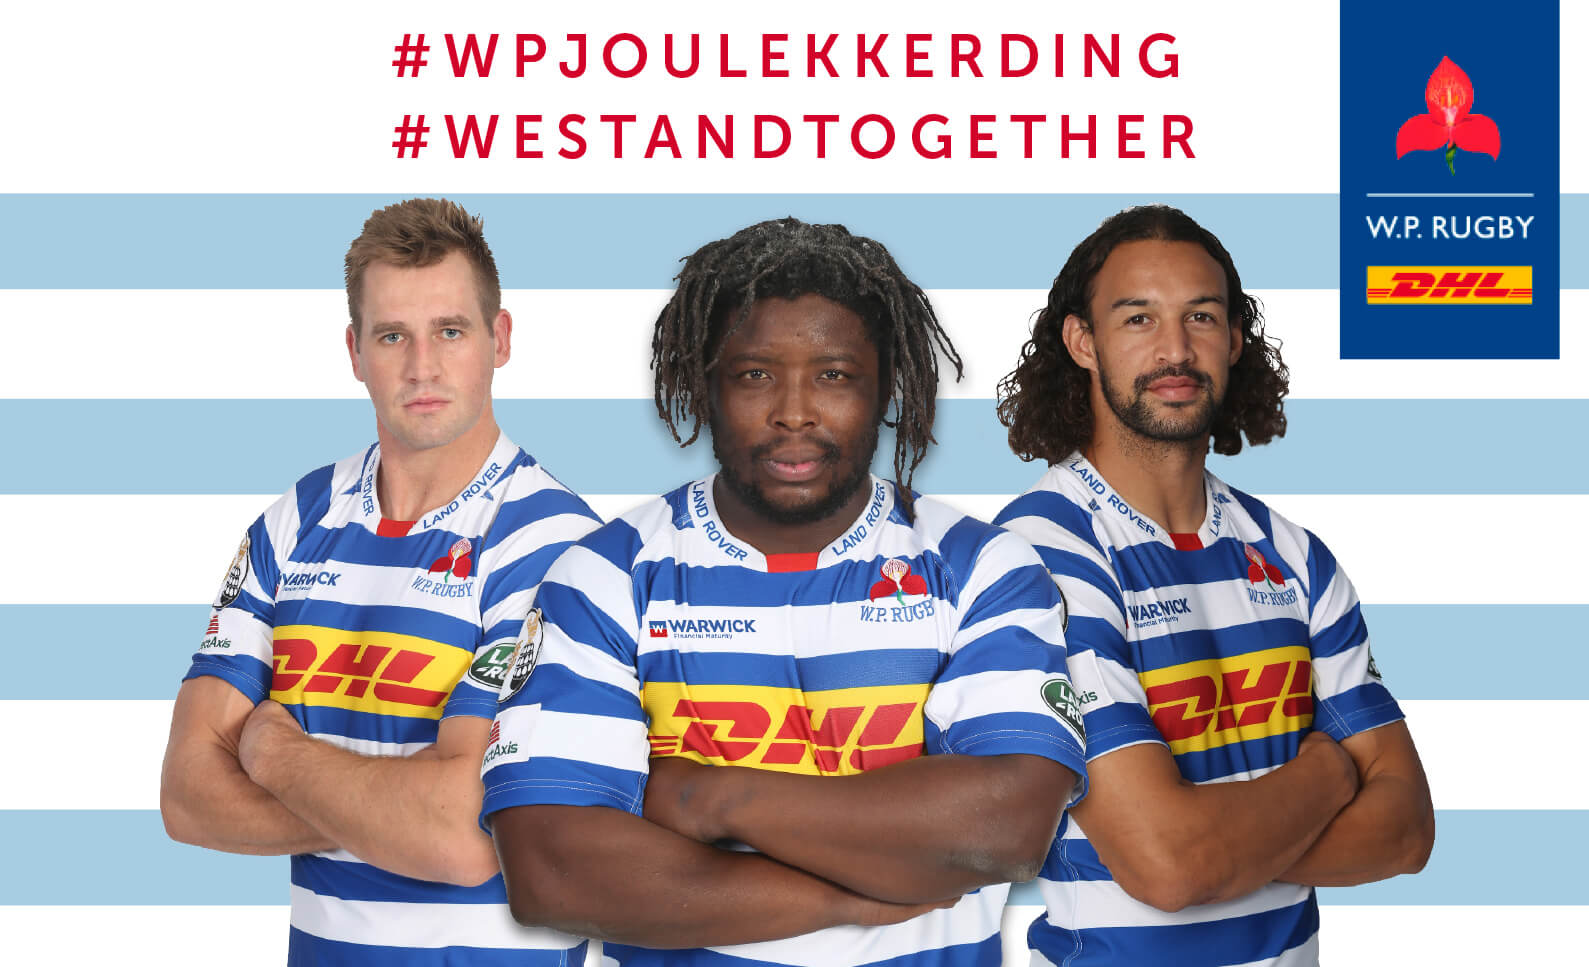 Stormers Picture: The Official DHL WP Rugby Site